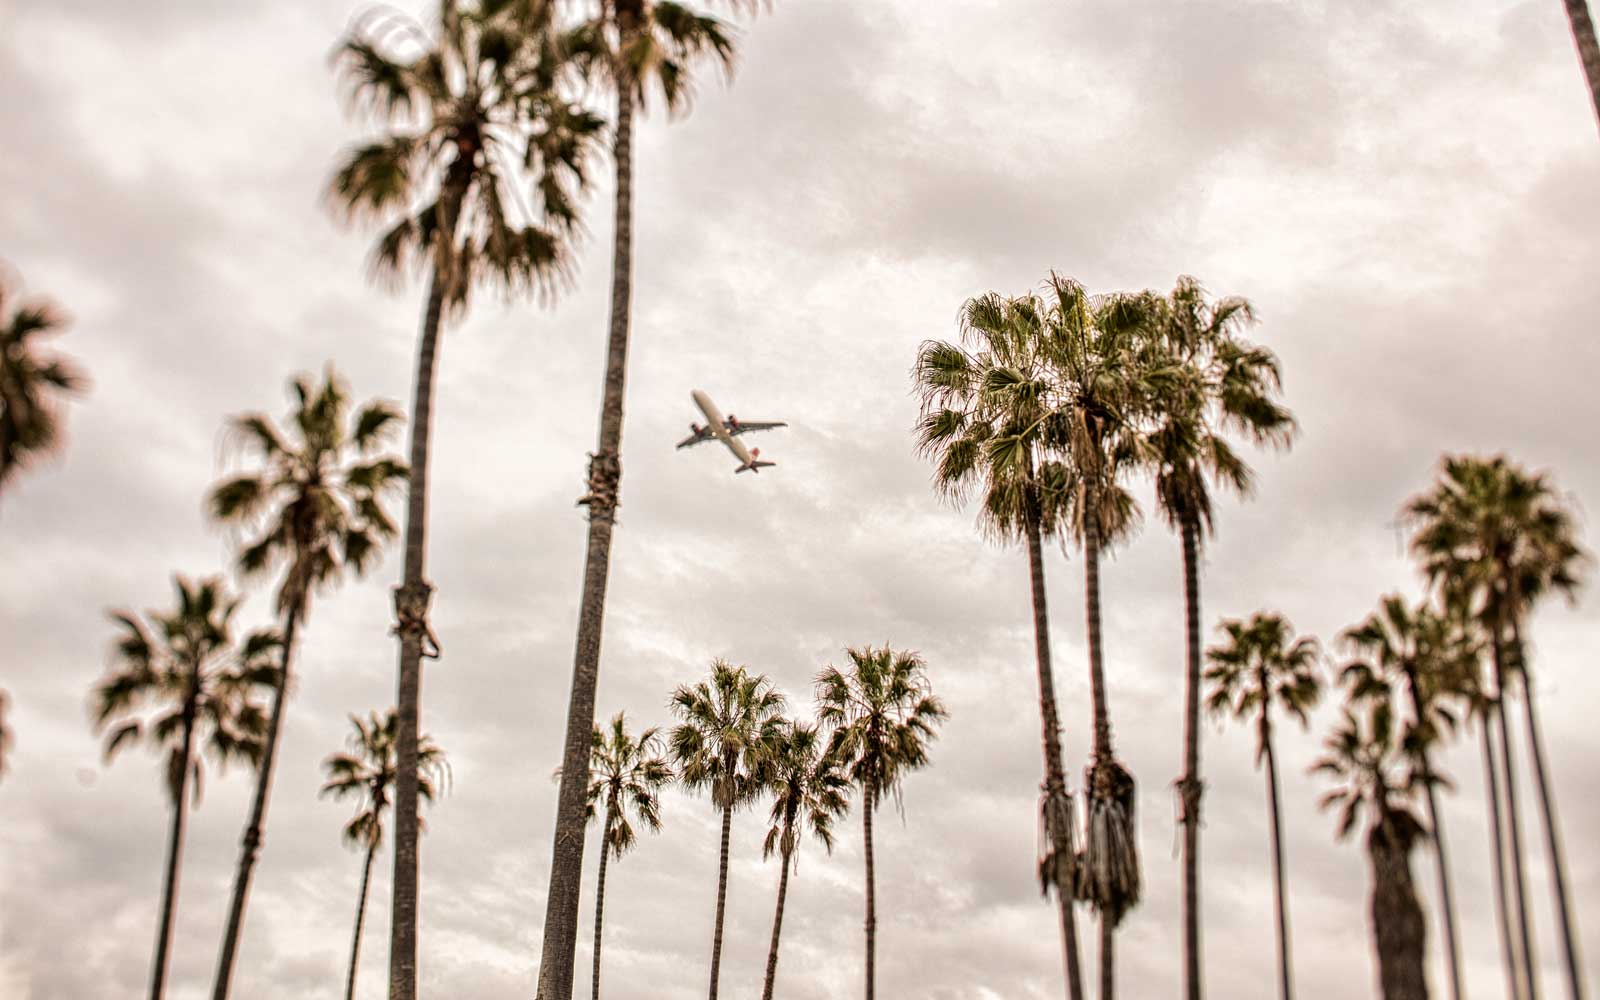 An airplane flying over palm trees